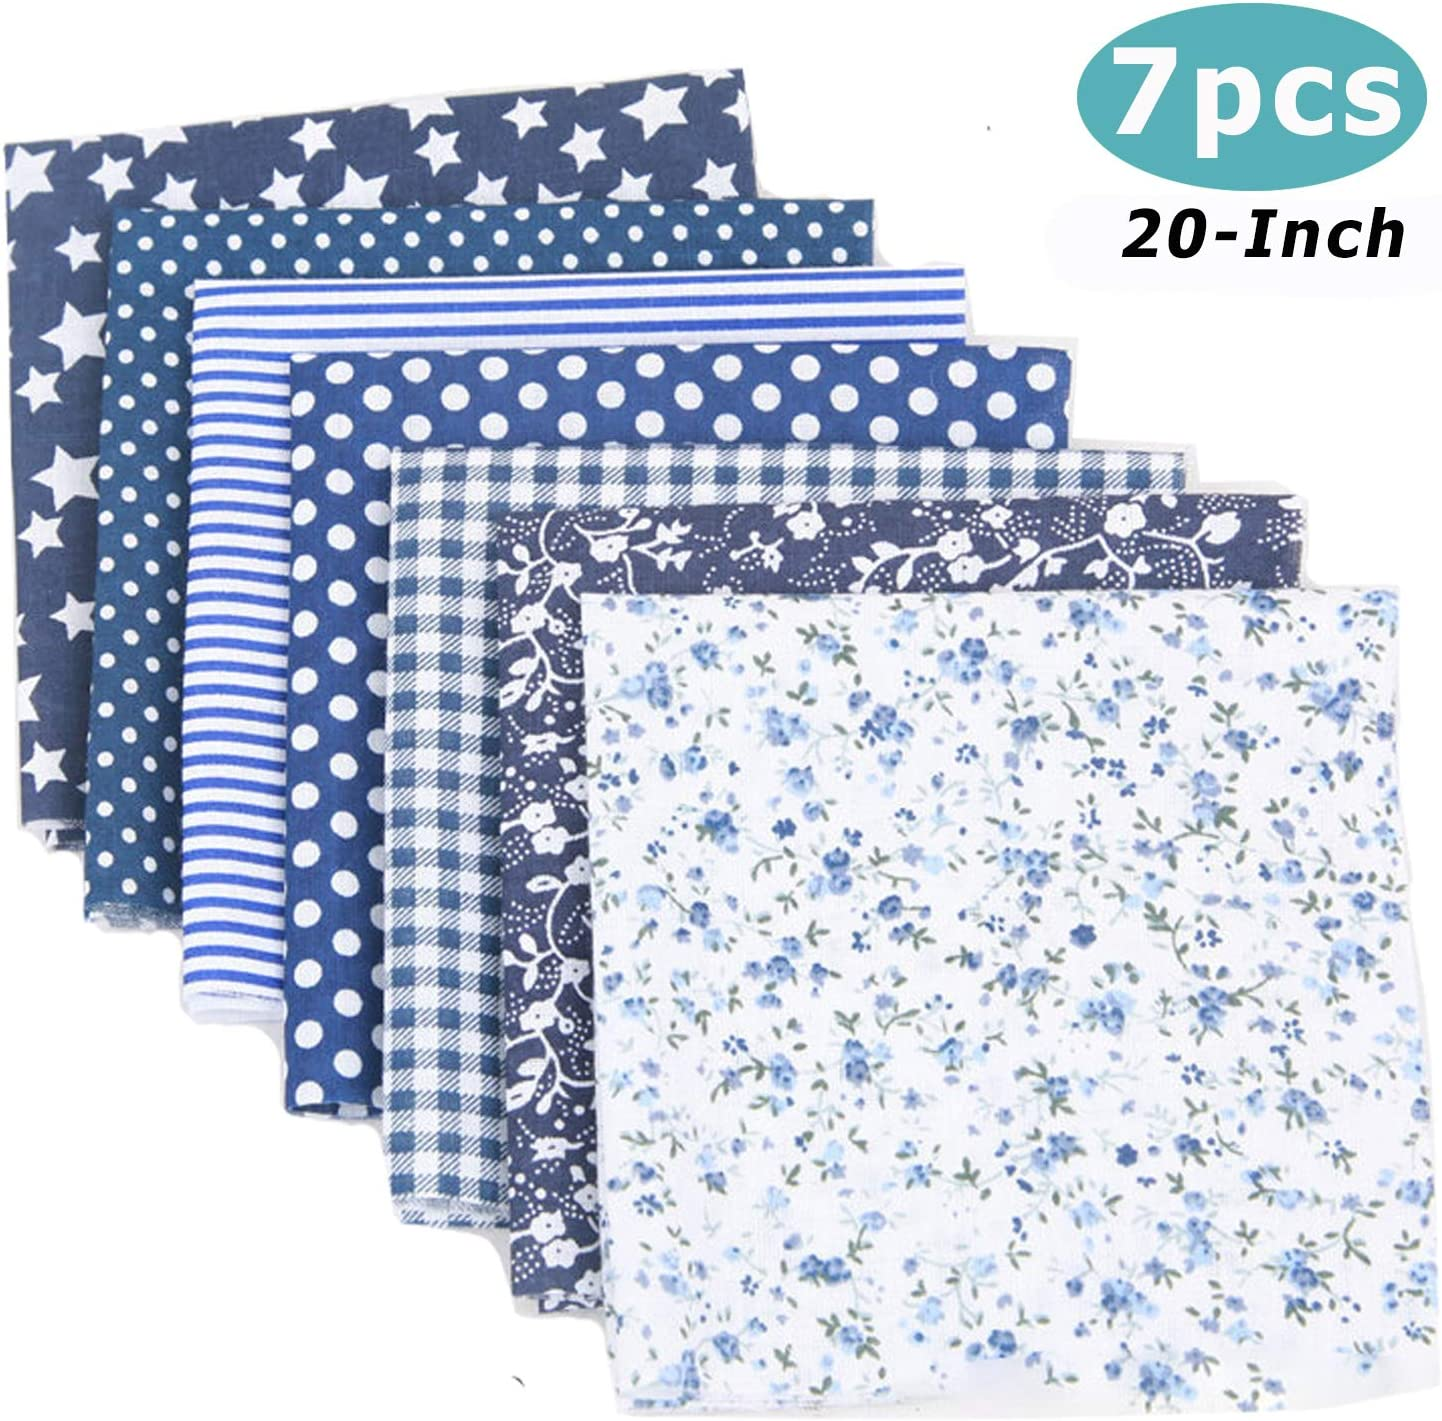 Cotton Craft Fabric Bundle Patchwork, 7pcs 20-inch Squares Quilting Sewing Patchwork Different Pattern Cloths DIY Scrapbooking Artcraft (Navy Blue)